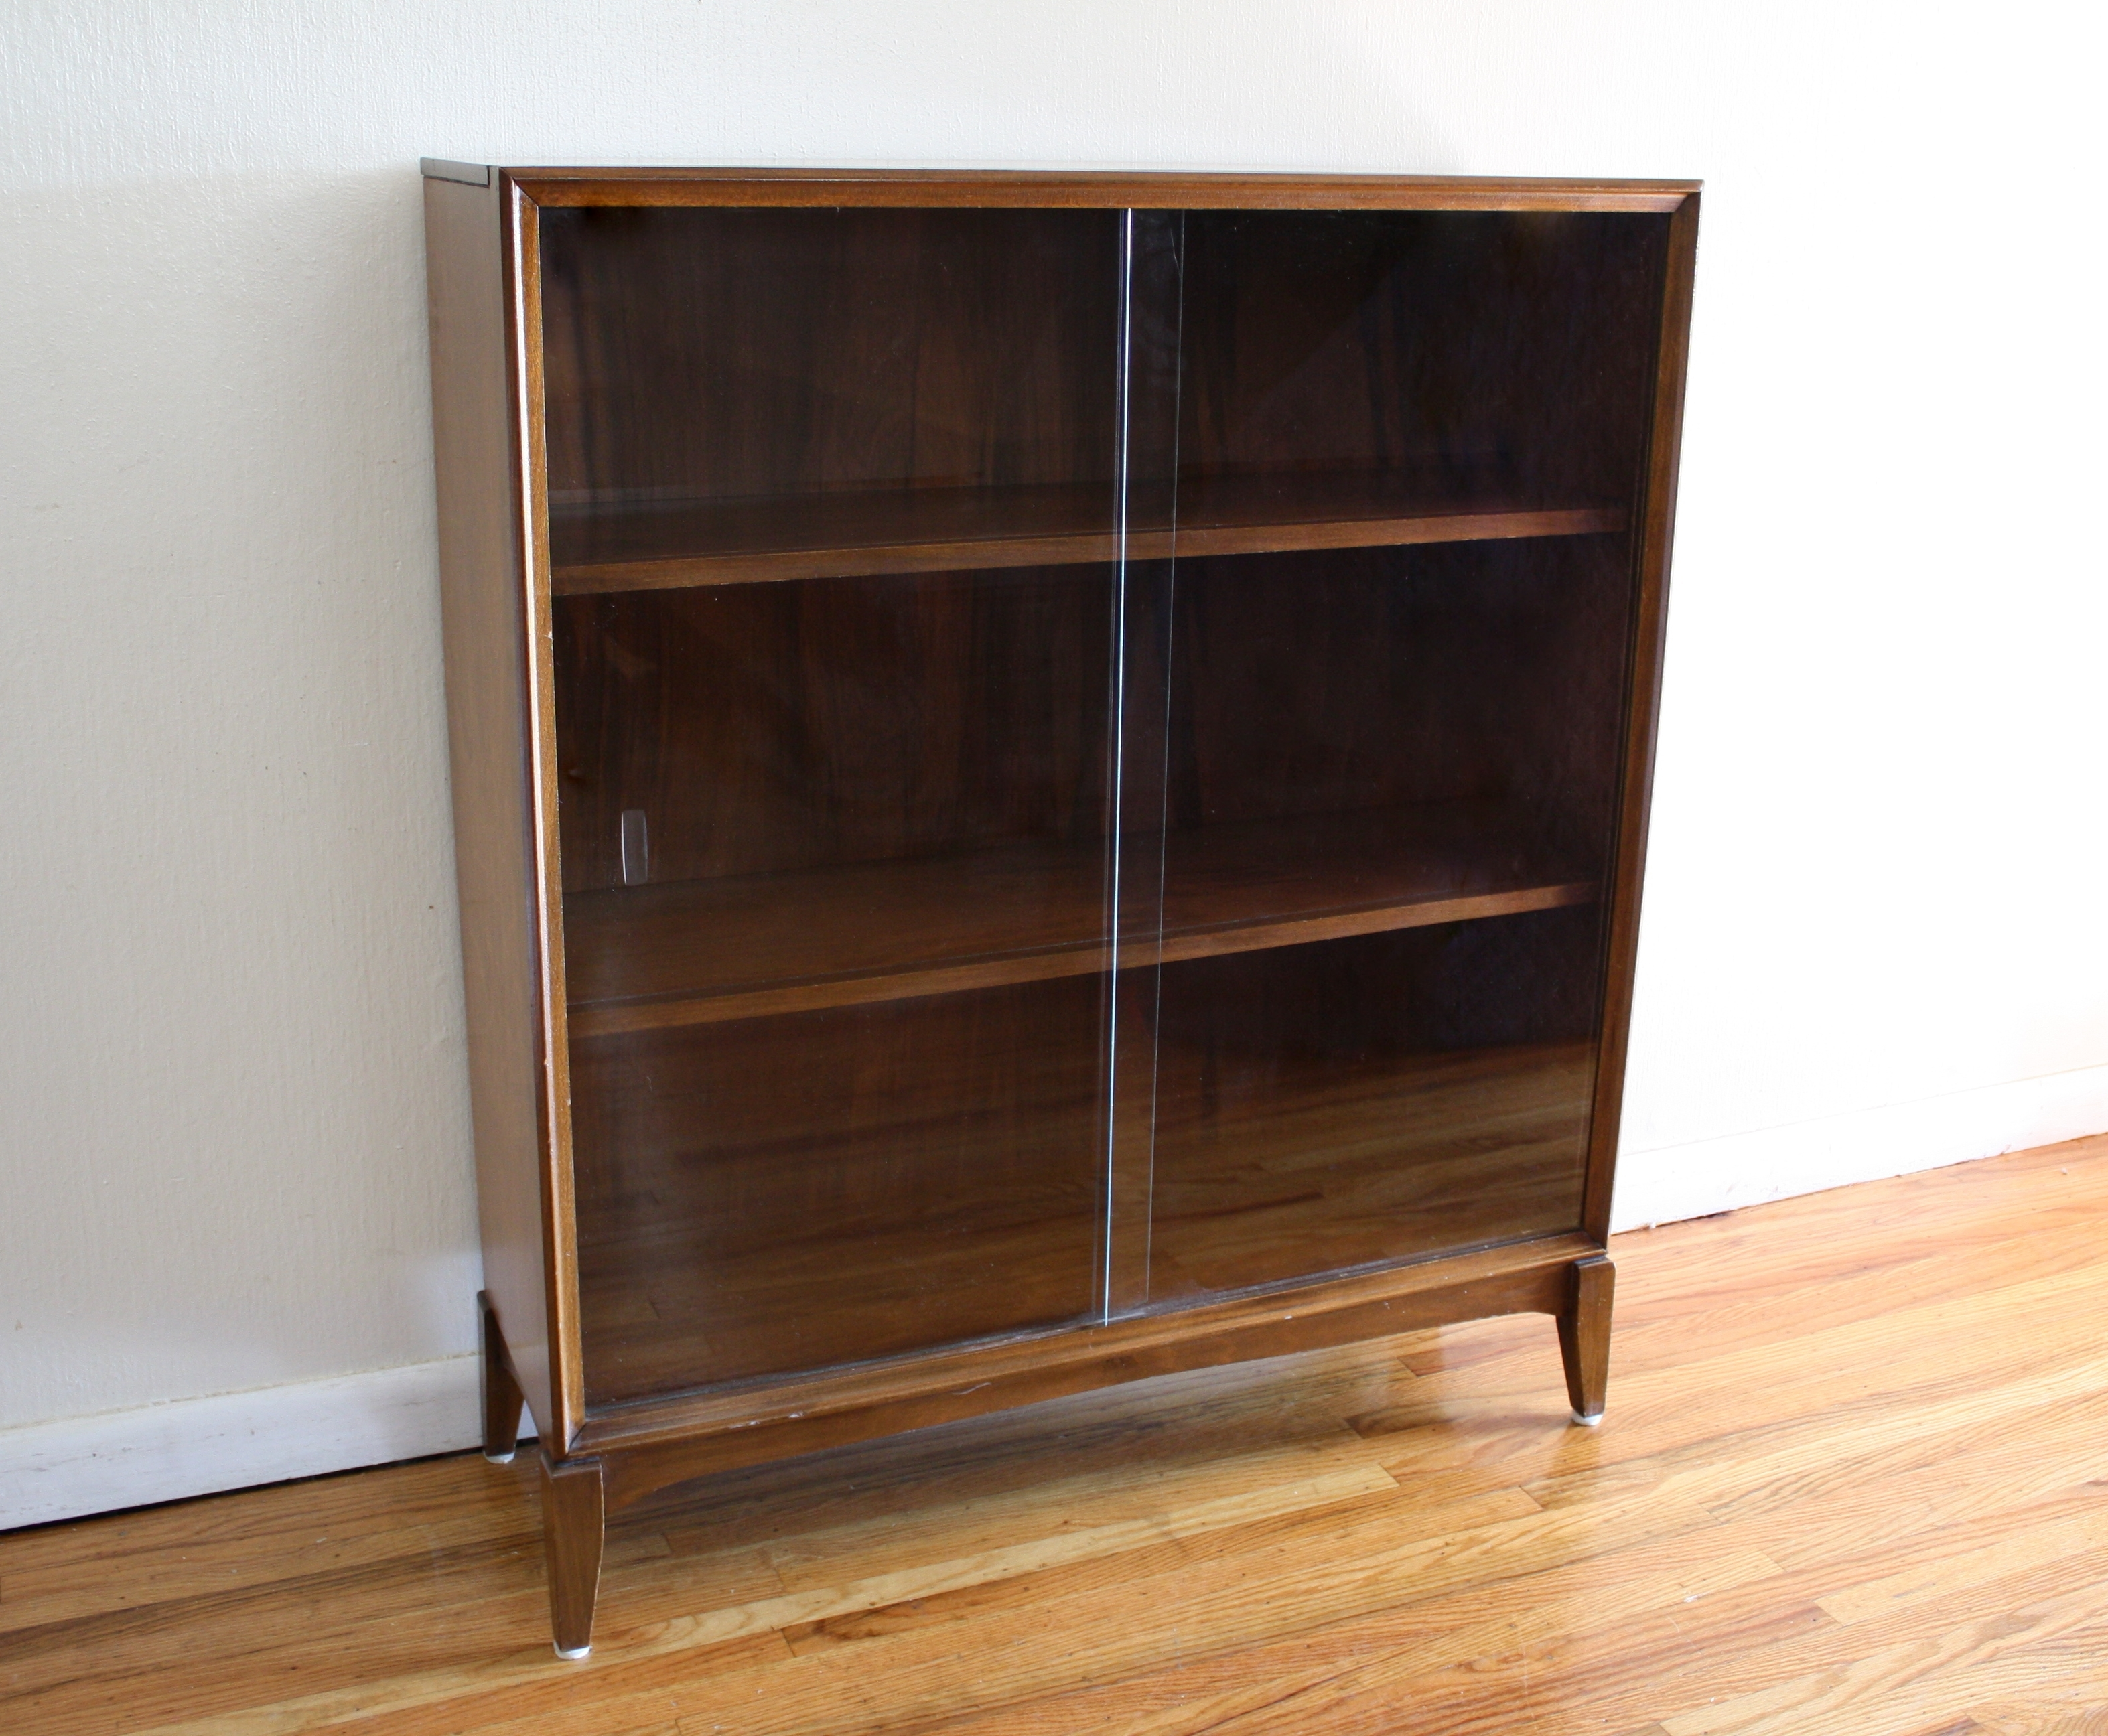 Midcentury Bookcases Within Popular 41 Mid Century Bookcase, Mid Century Modern Bookcase For Small (View 10 of 15)